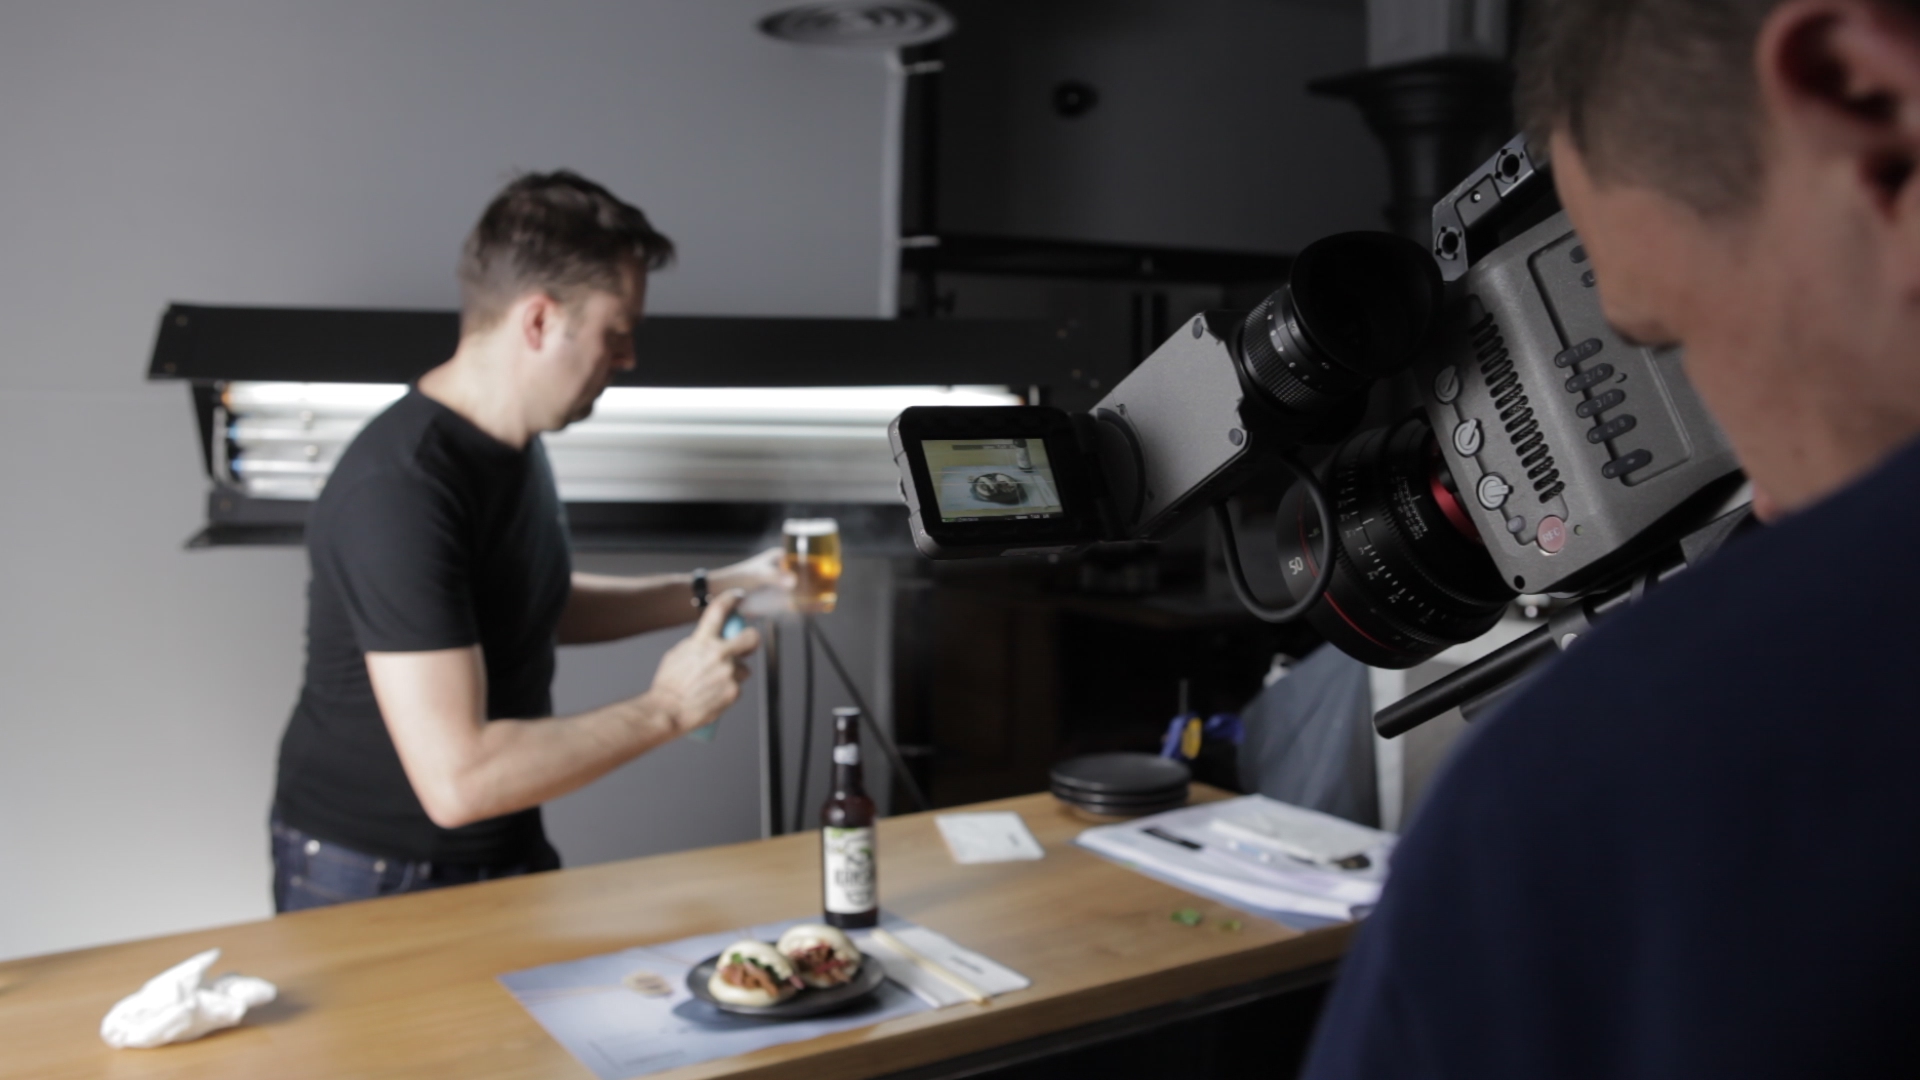 wagamama video content production